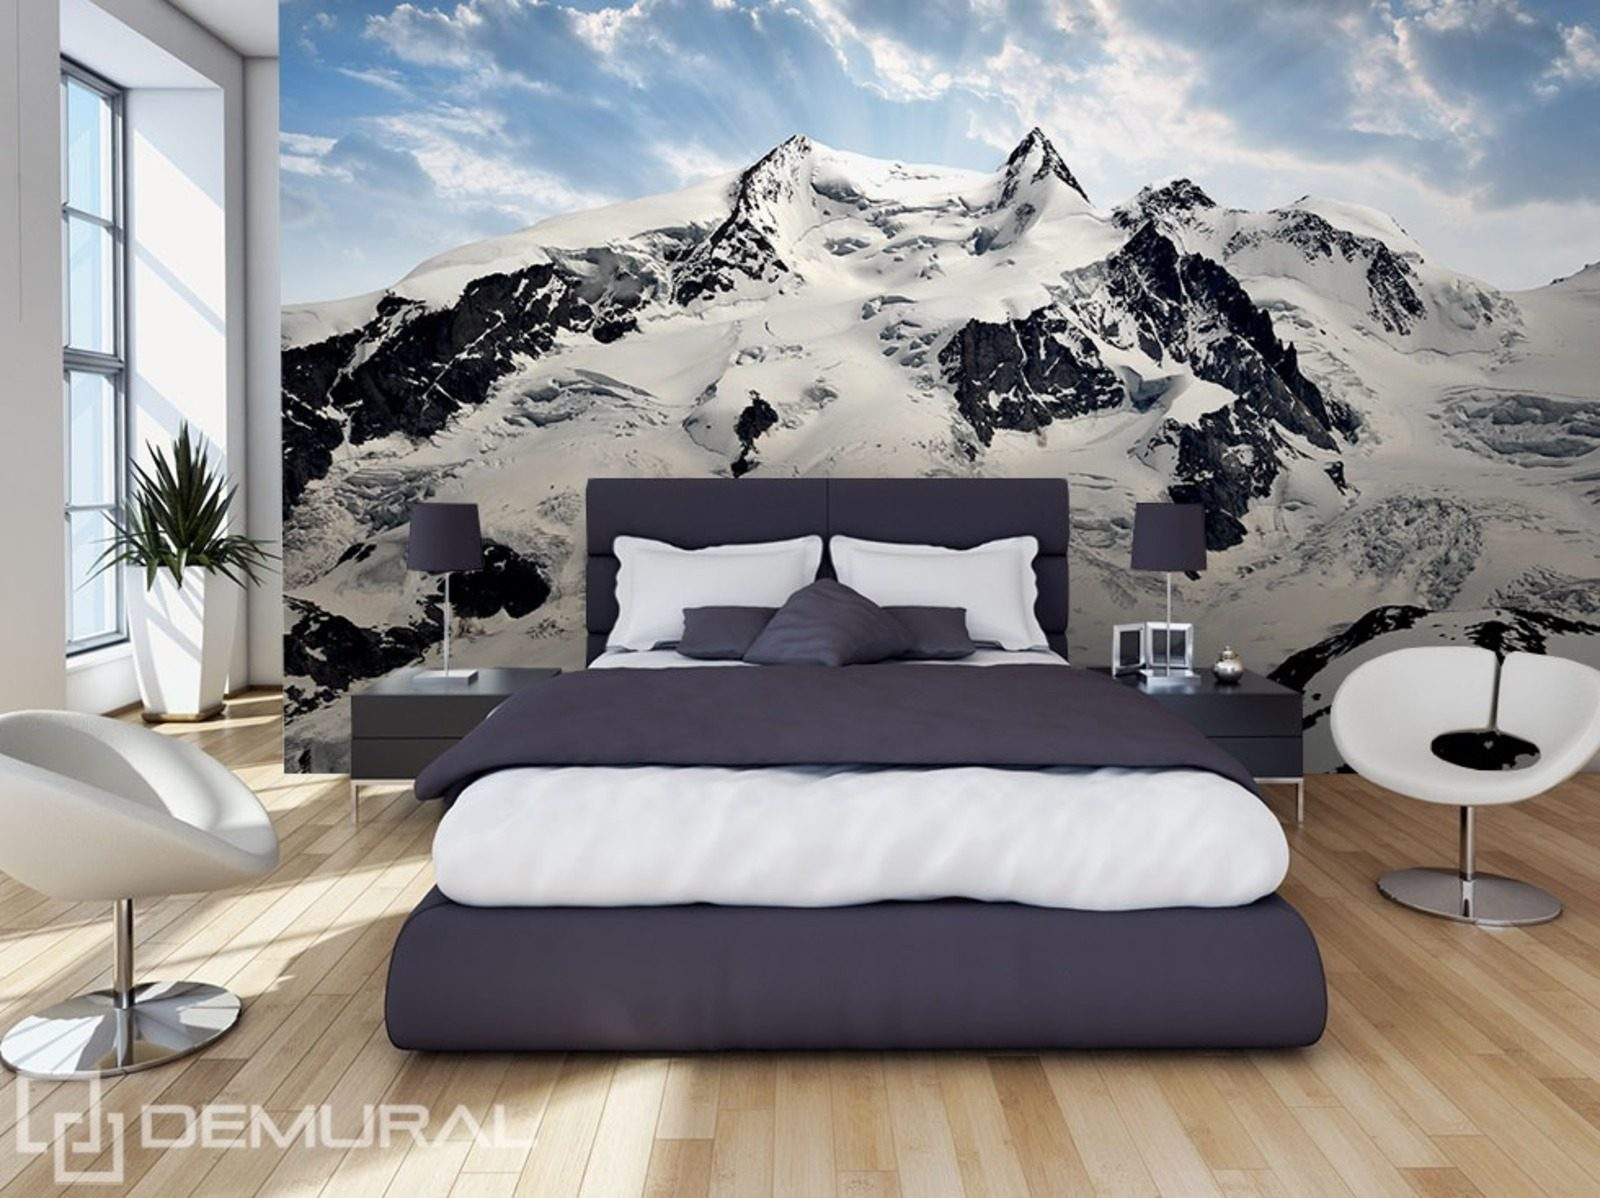 glanz ber die h gel fototapete f r schlafzimmer fototapeten demural. Black Bedroom Furniture Sets. Home Design Ideas